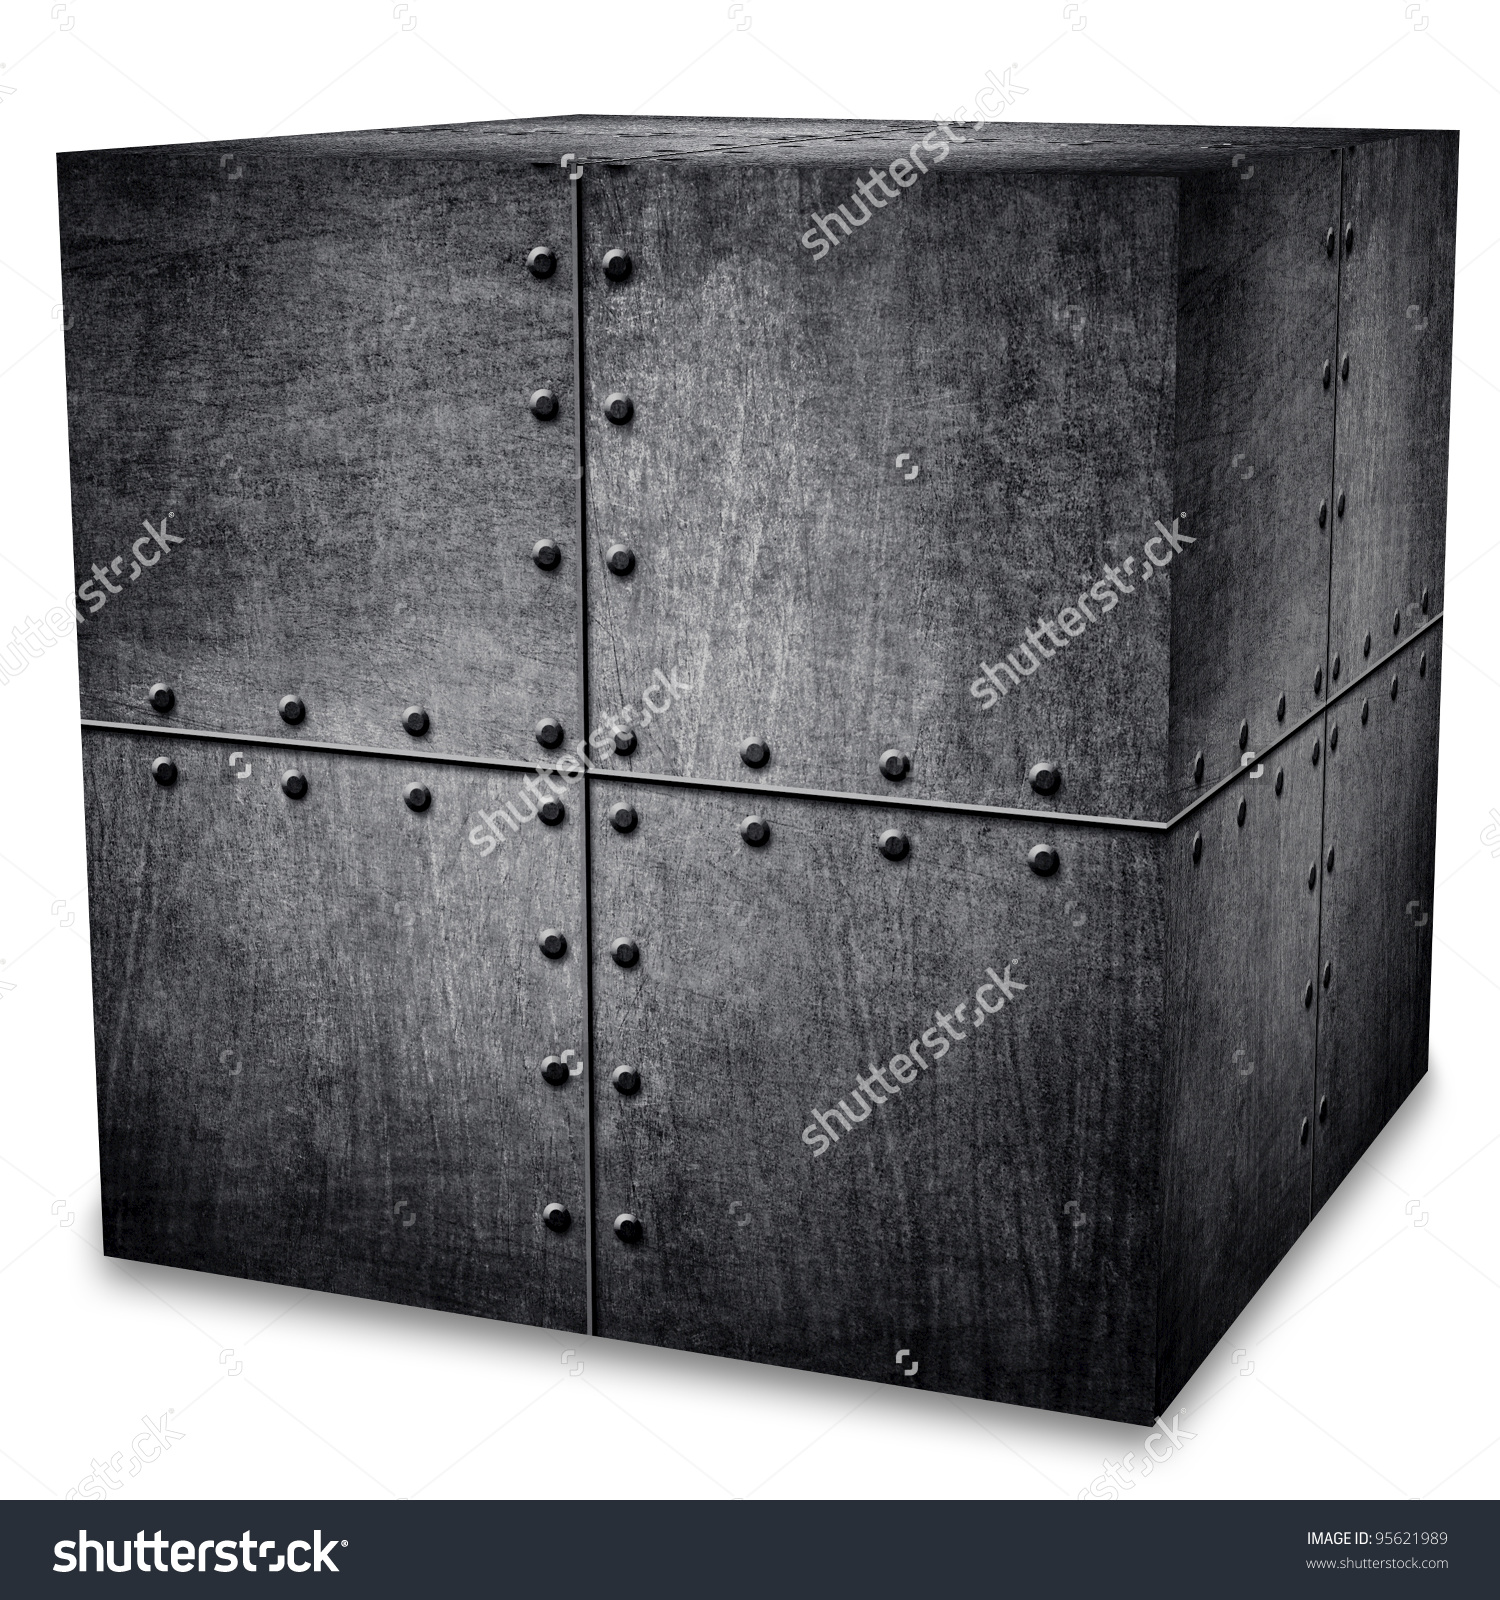 Metal Box Isolated Clipping Path Stock Photo 95621989.